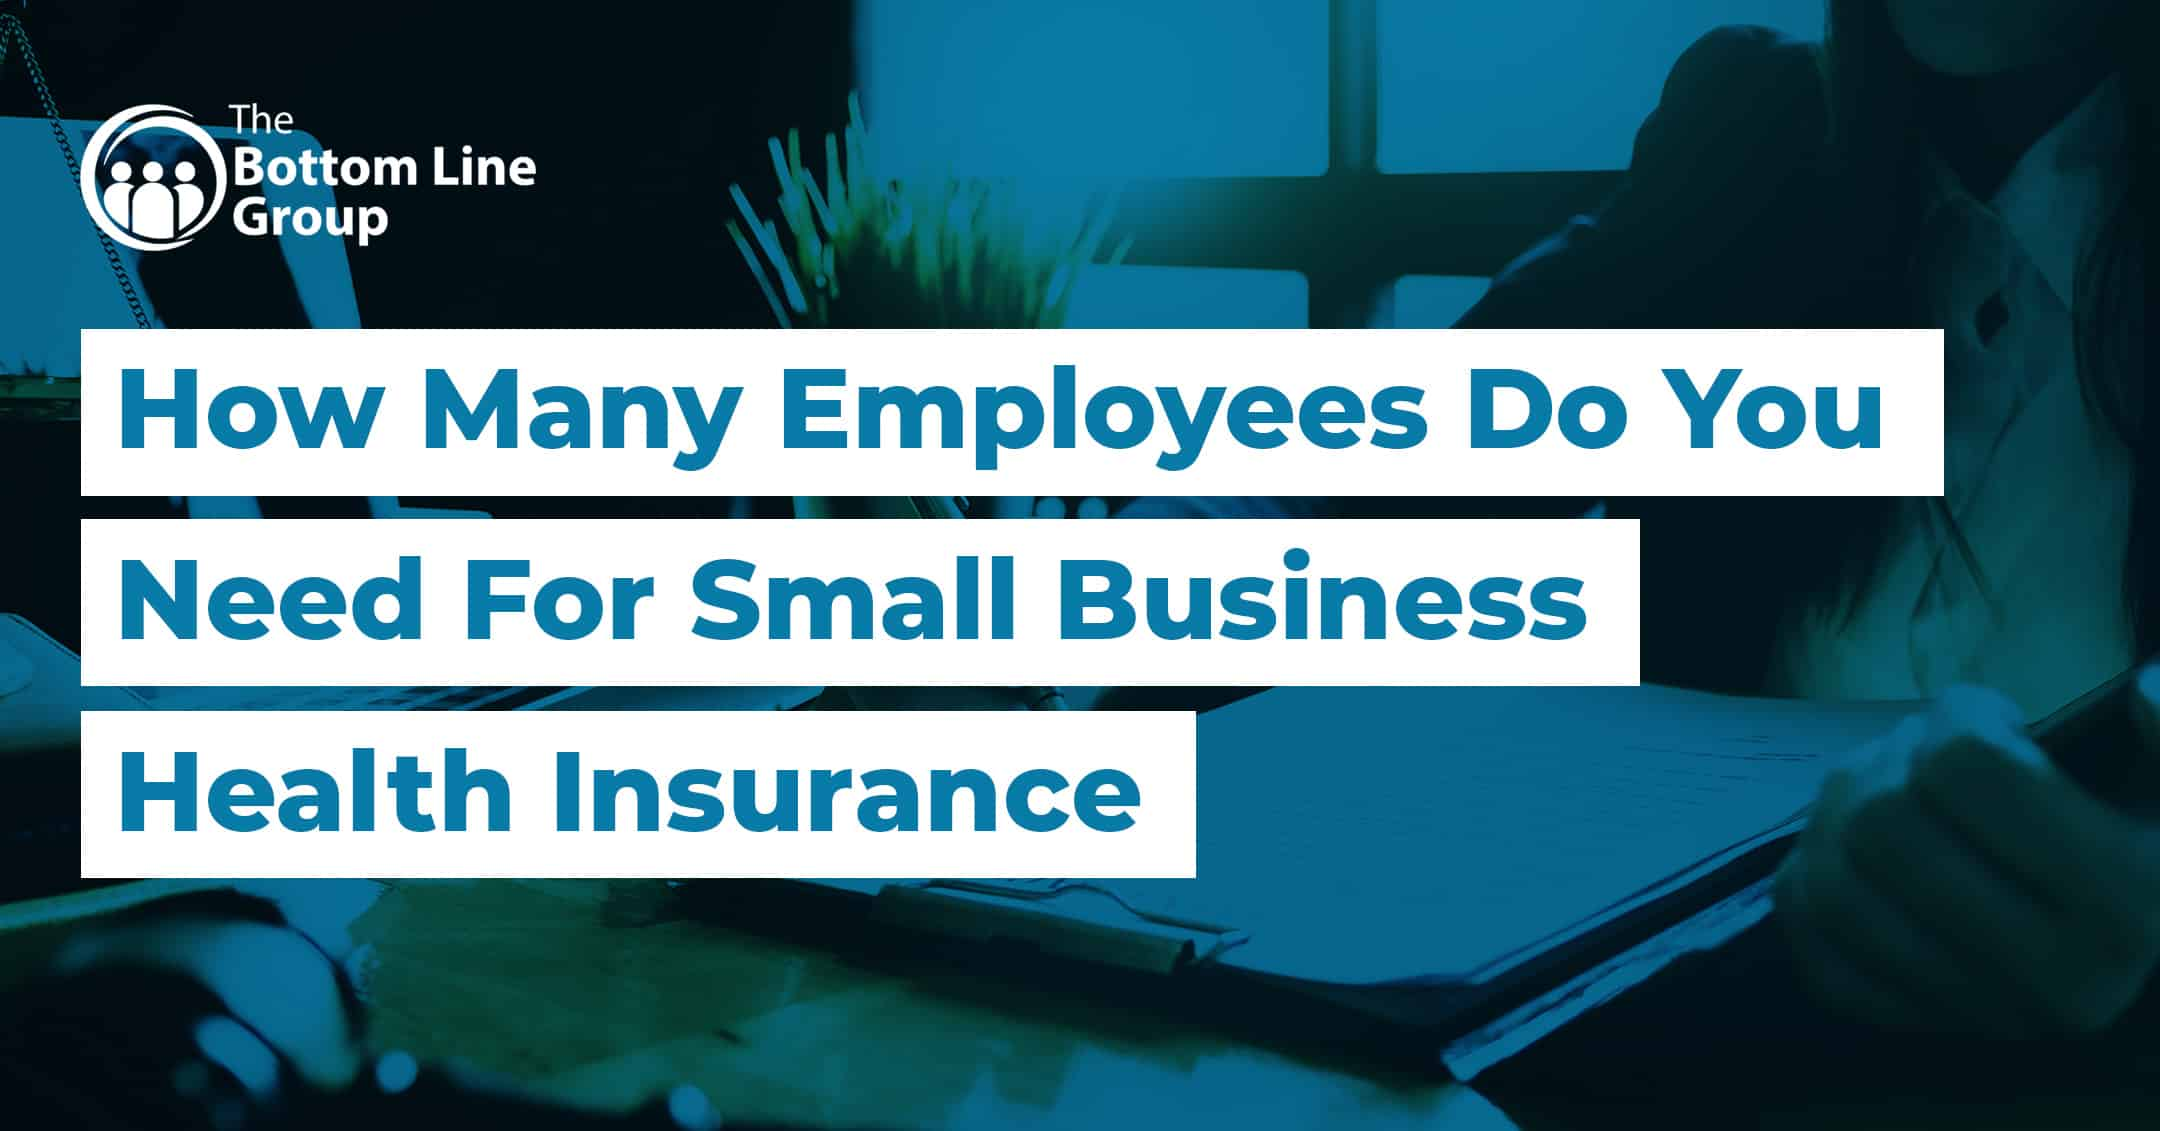 18-(How-Many-Employees-Do-You-Need-For-Small-Business-Health-Insurance)1